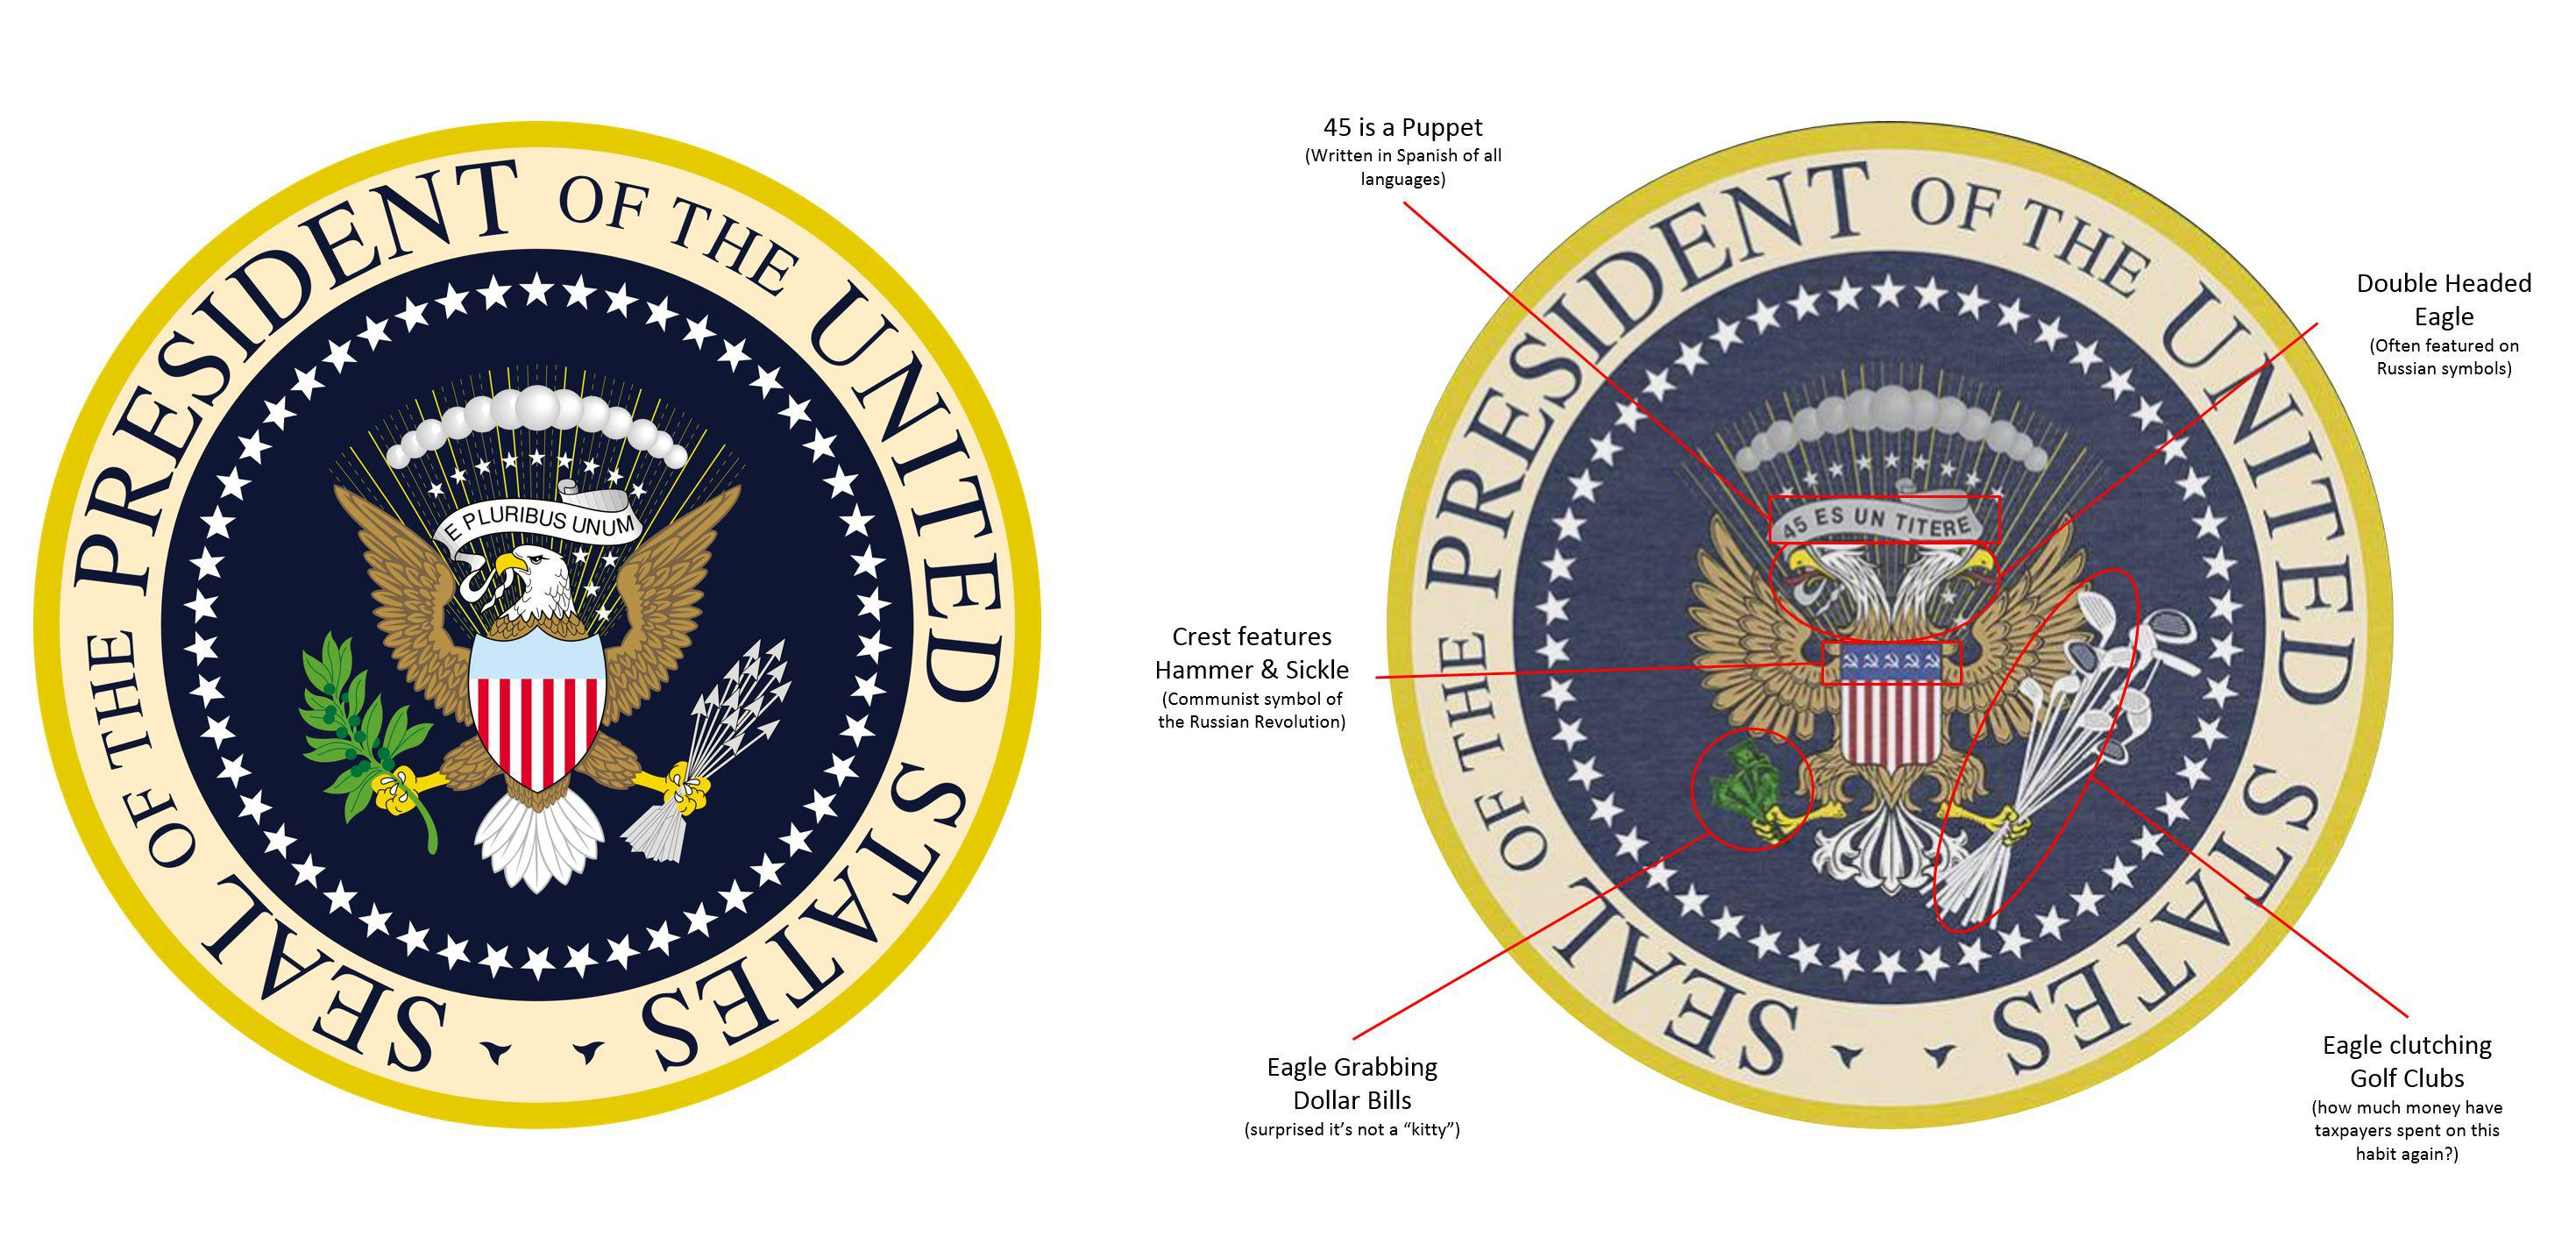 The New Presidential Seal vs Original : PoliticalHumor.